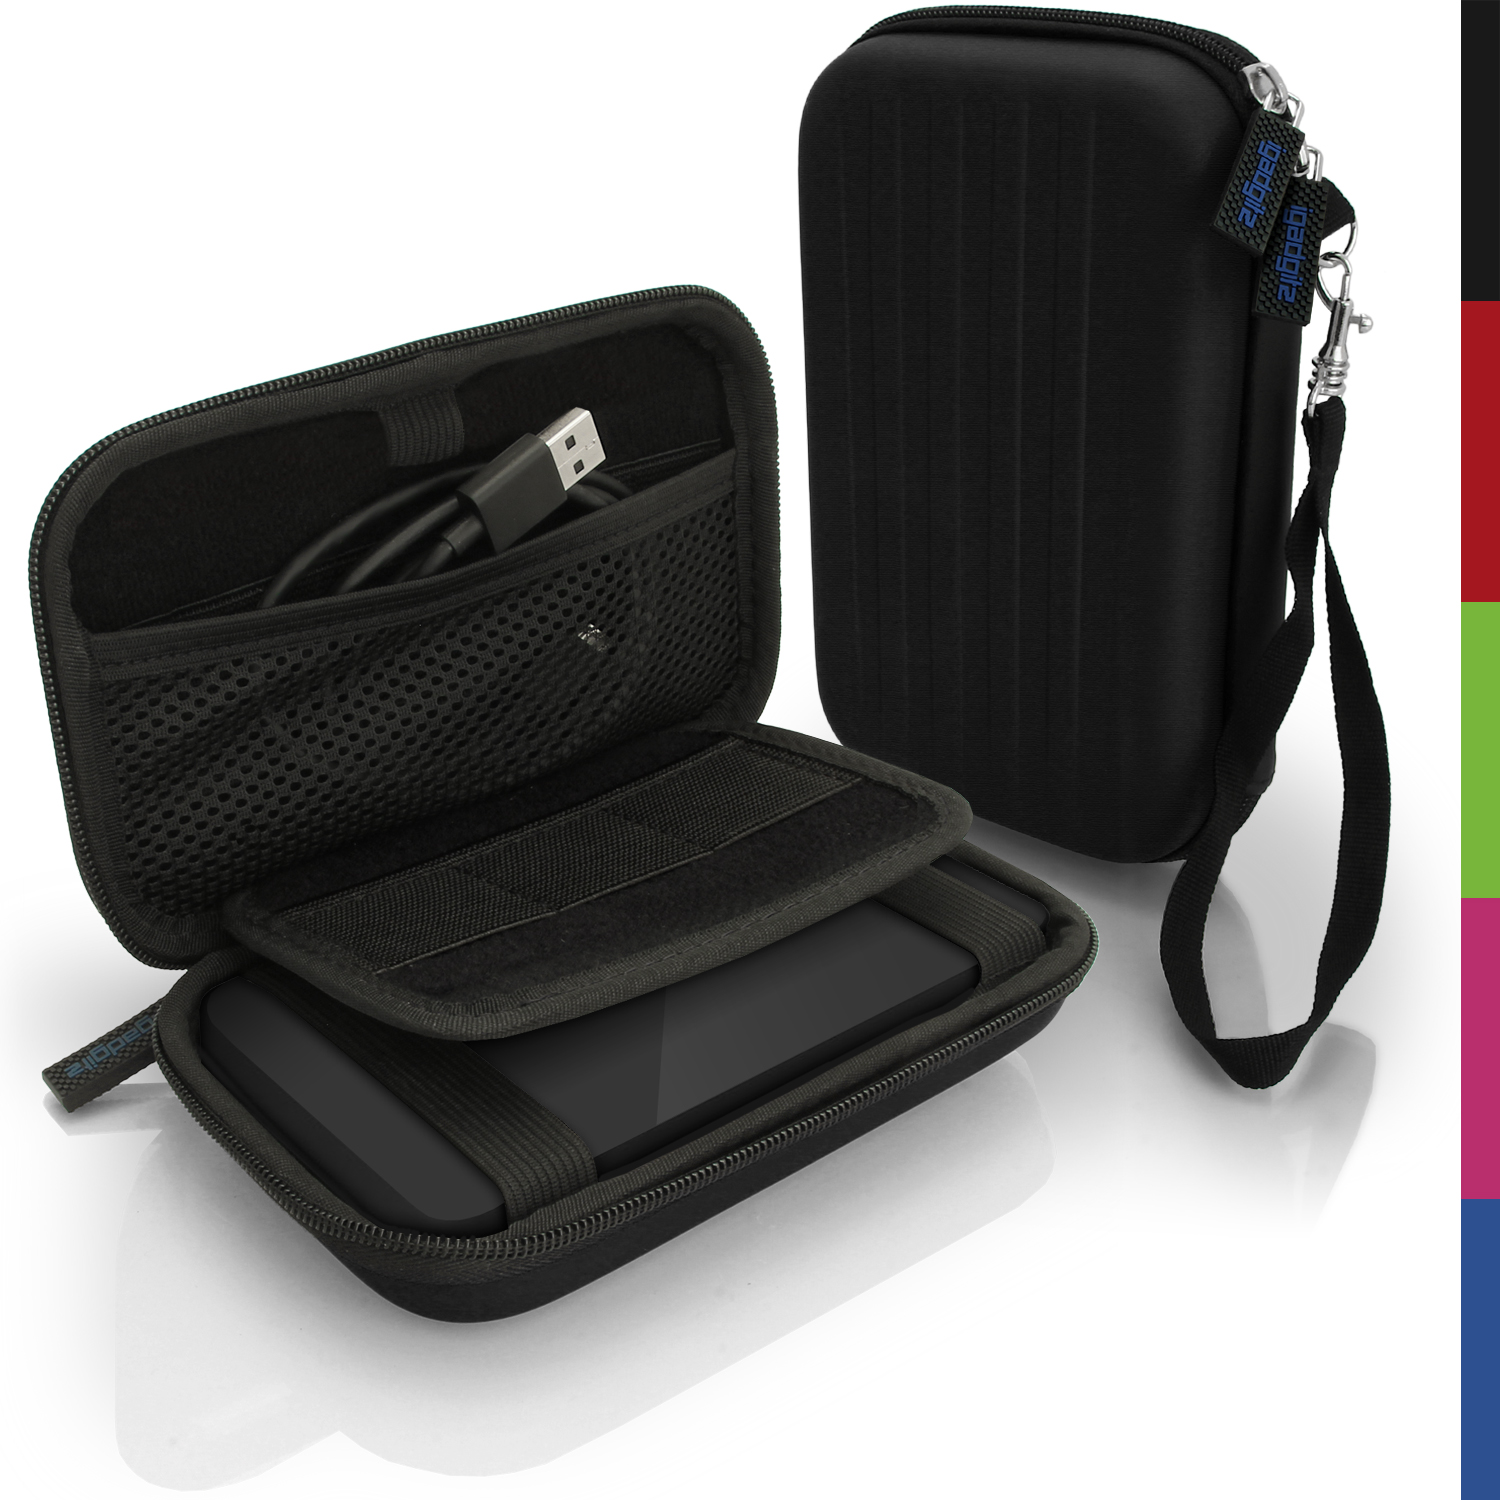 iGadgitz Black EVA Hard Travel Case Cover for Portable External Hard Drives (Internal Dimensions: 142 x 80.6 x 21.6mm)